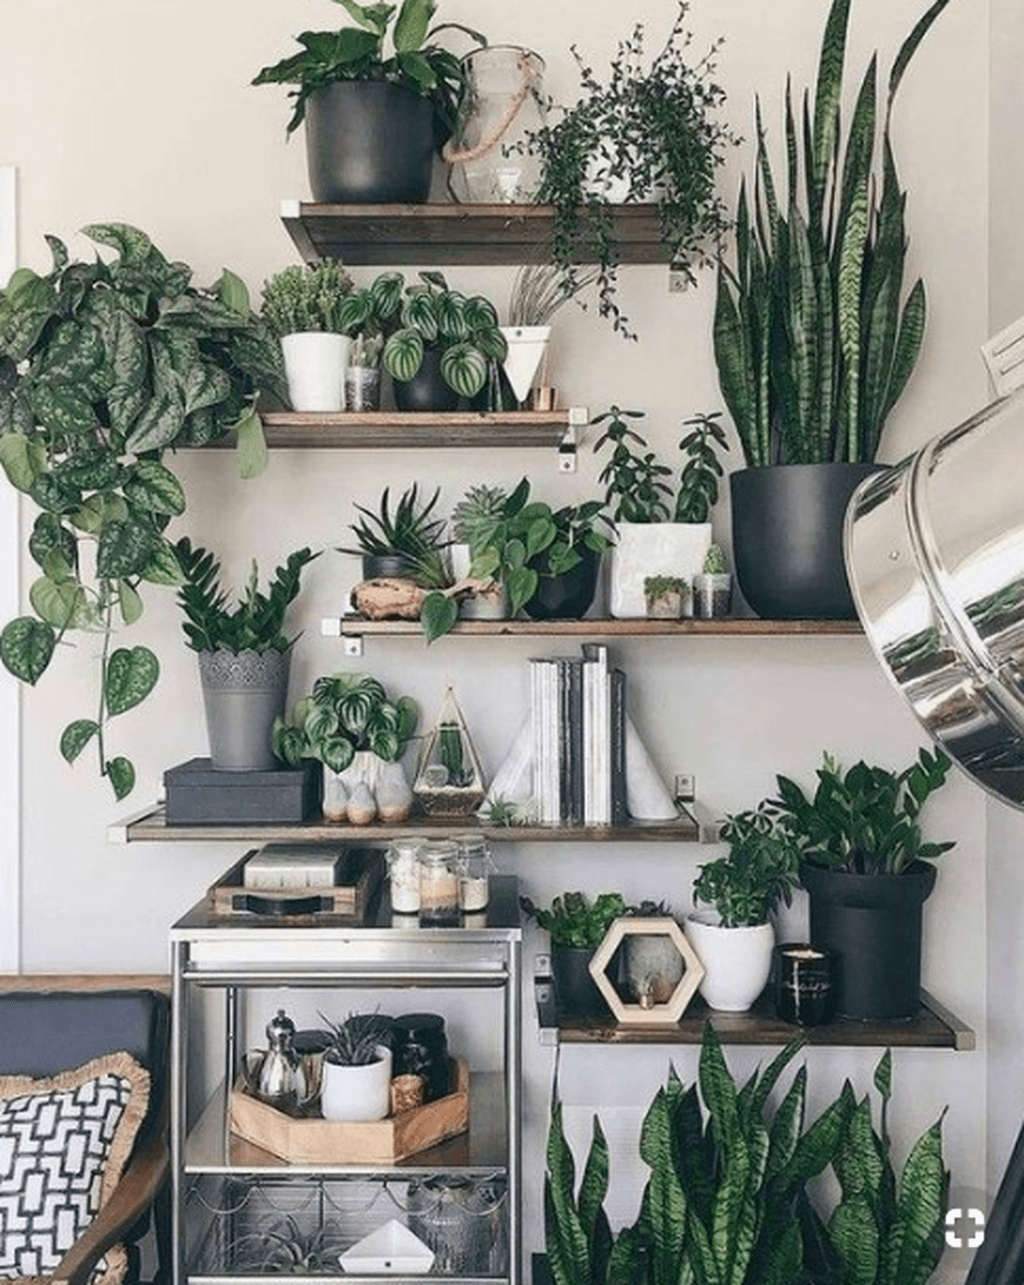 32 The Best Indoor Living Wall Decor Ideas For Your Interior Design Plant Wall Decor Living Room Plants Plant Decor Indoor